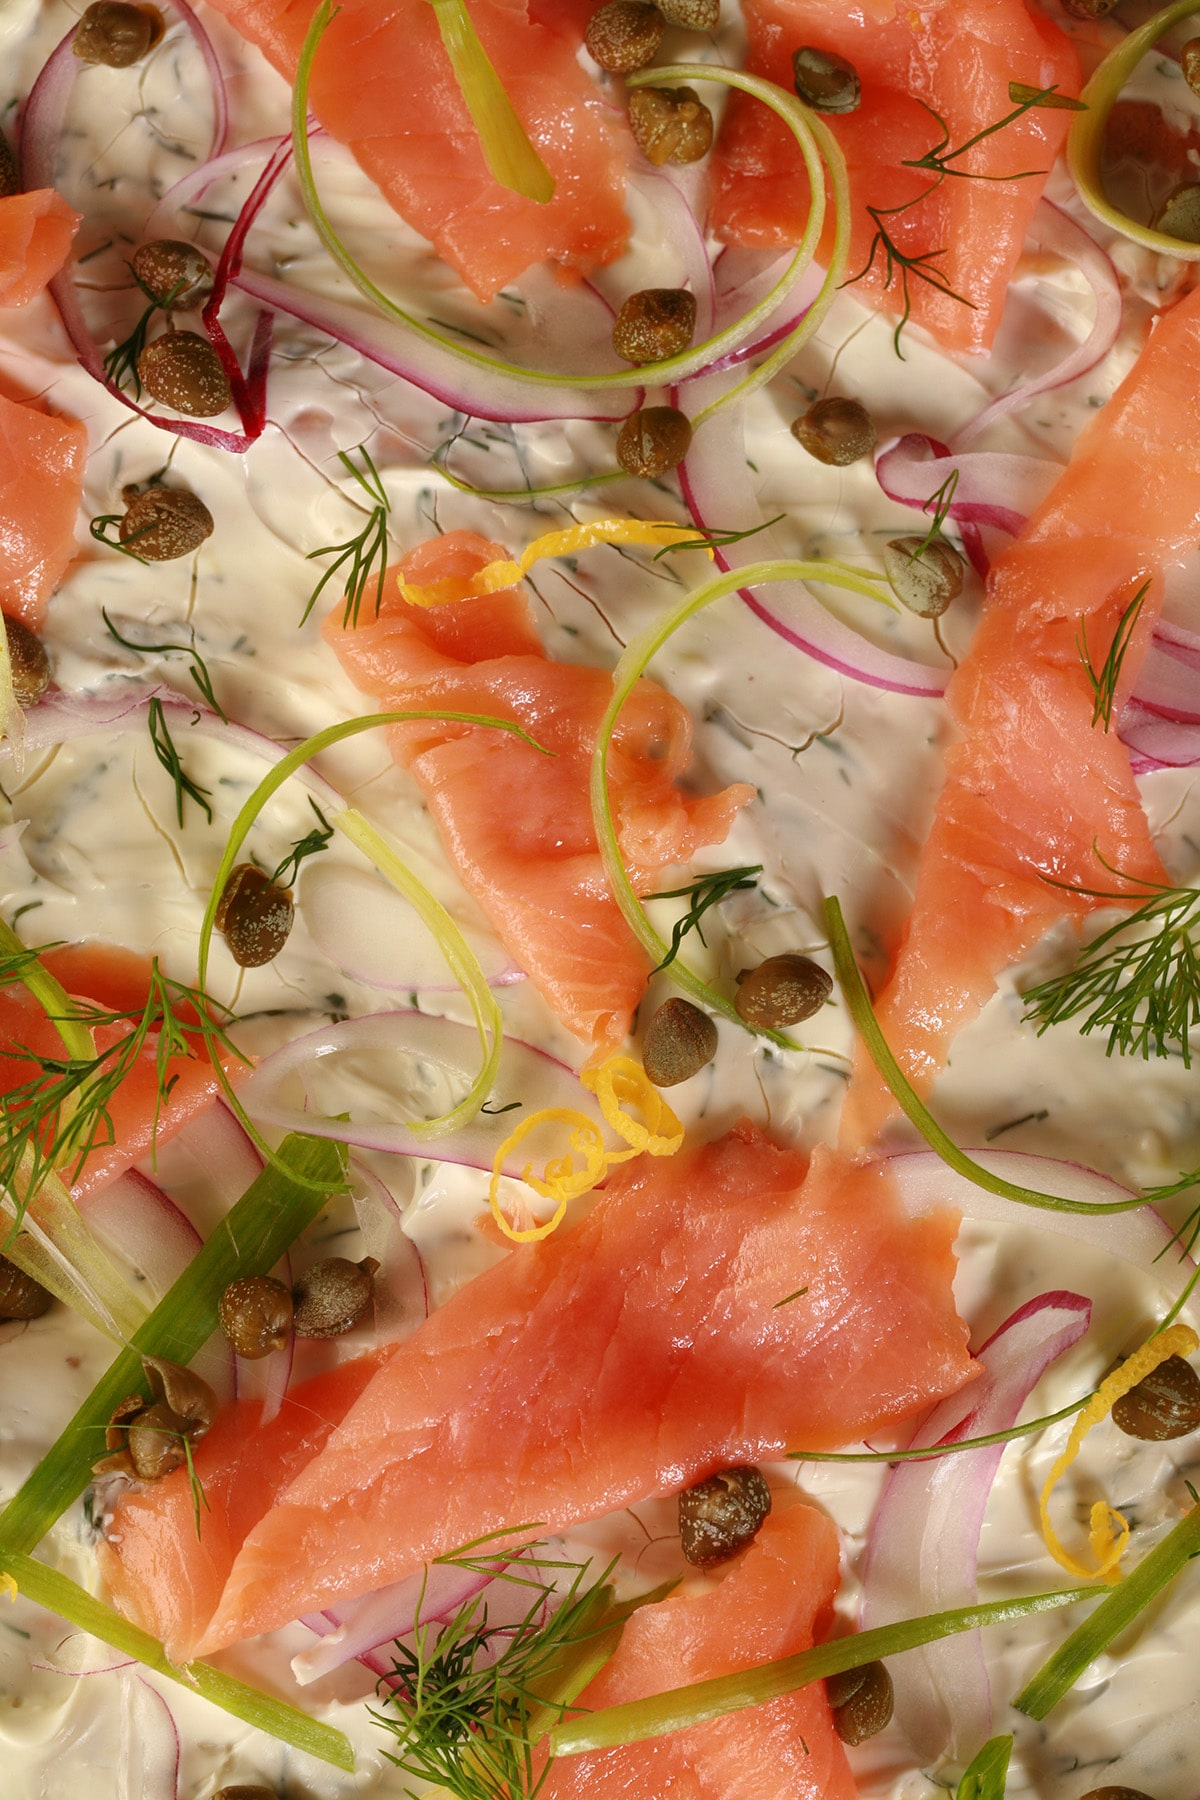 A close up view of smoked salmon pizza. The crust is rye, and it's topped with cream cheese sauce, smoked salmon, and other toppings.